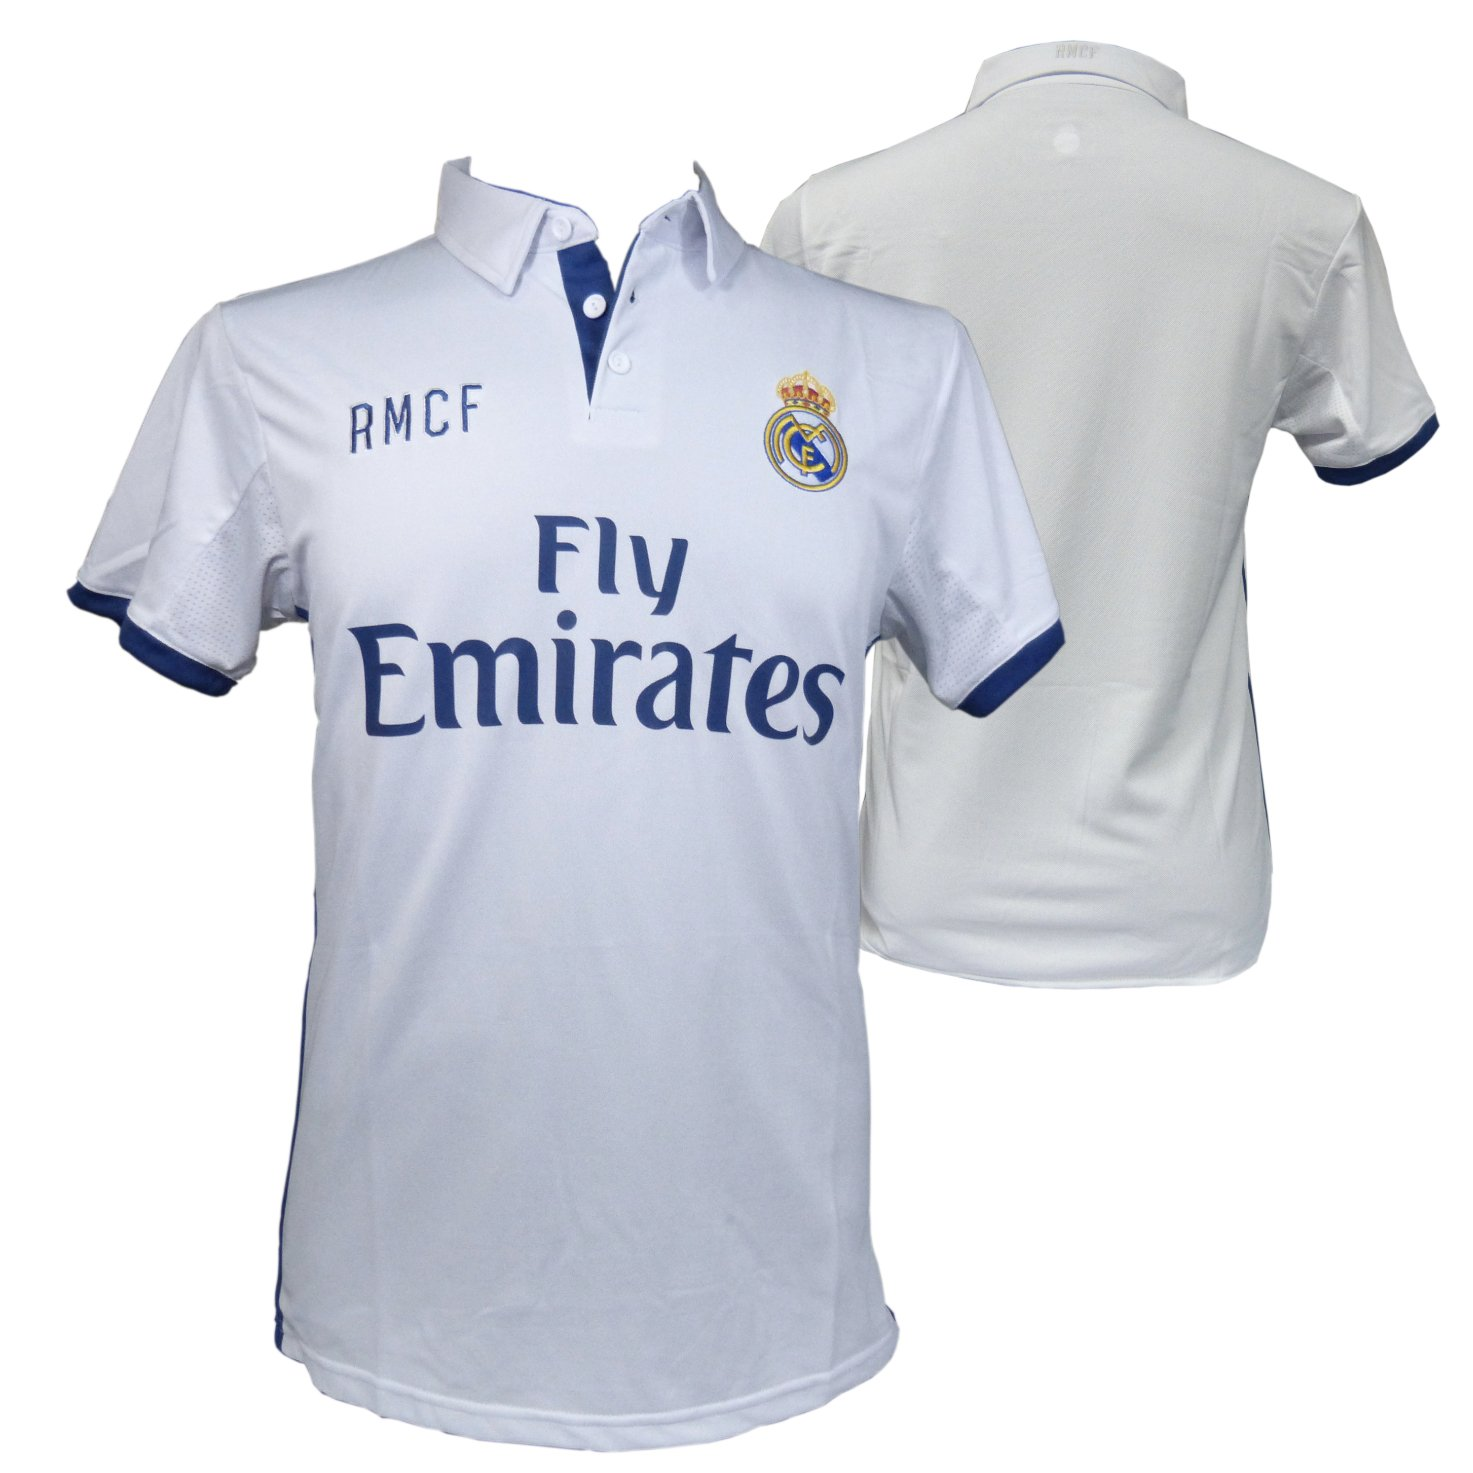 CAMISETA 1ª EQUIPACION REPLICA OFICIAL REAL MADRID 2016-2017 LISO ADULTO (XL): Amazon.es: Deportes y aire libre